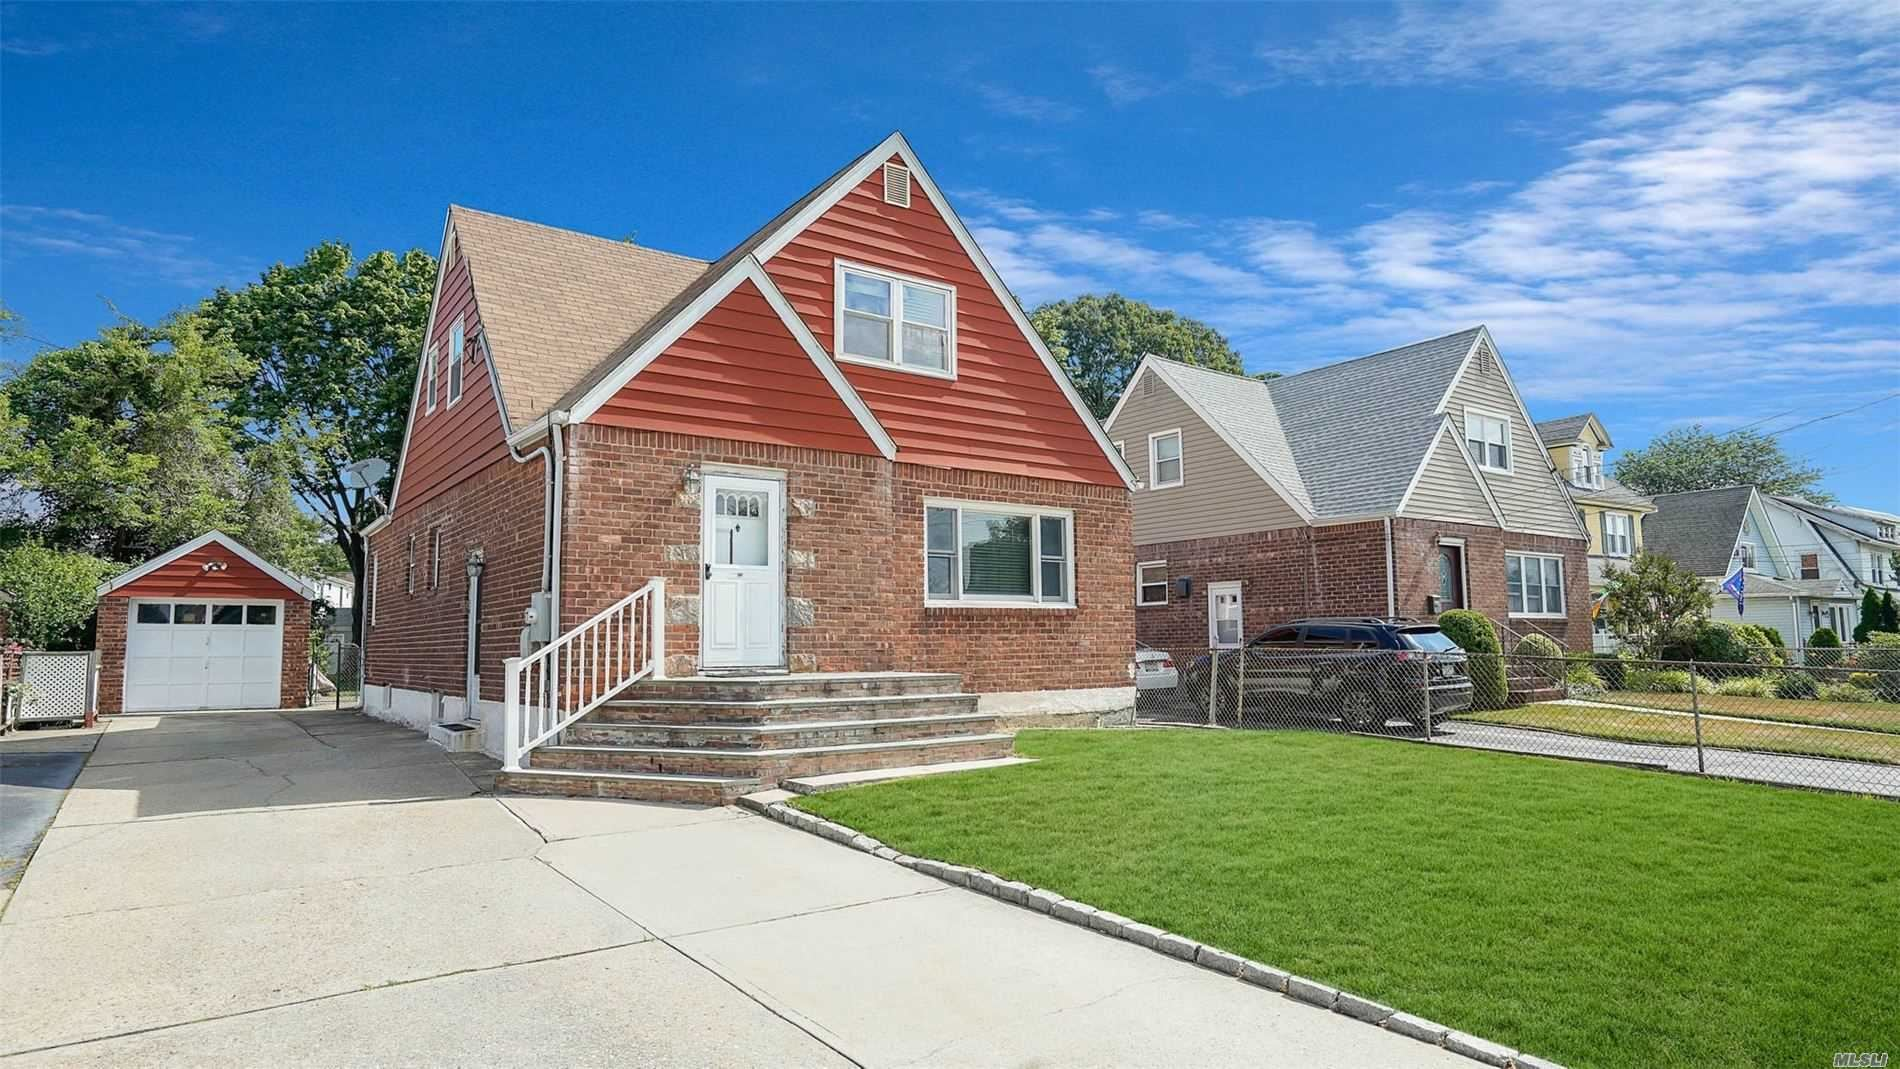 20 Centre Avenue, East Rockaway, NY 11518 - MLS#: 3229012